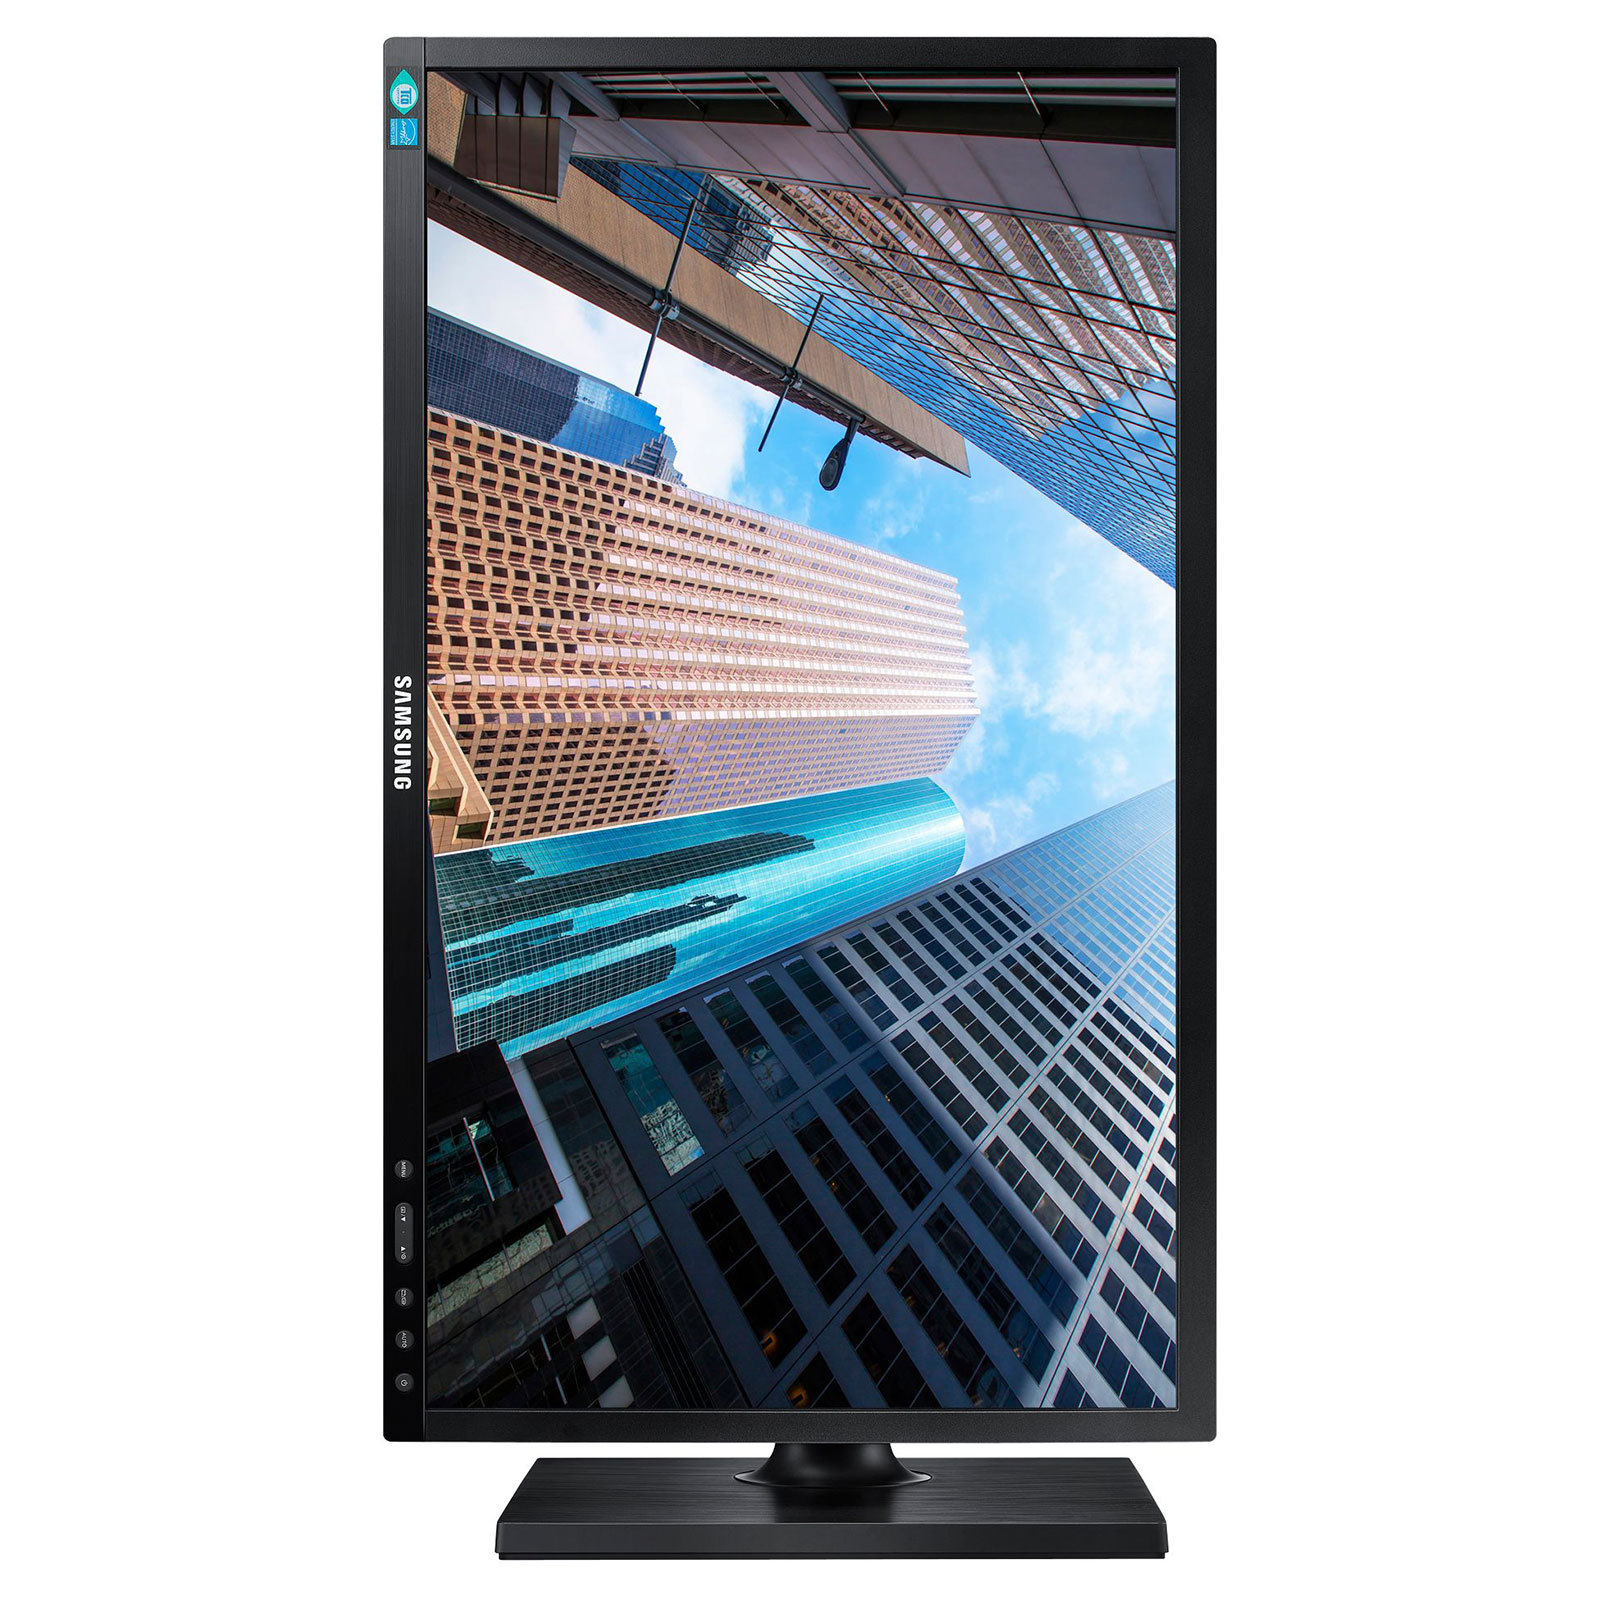 Samsung 19 led syncmaster s19e450bw ecran pc samsung for Ecran pc large